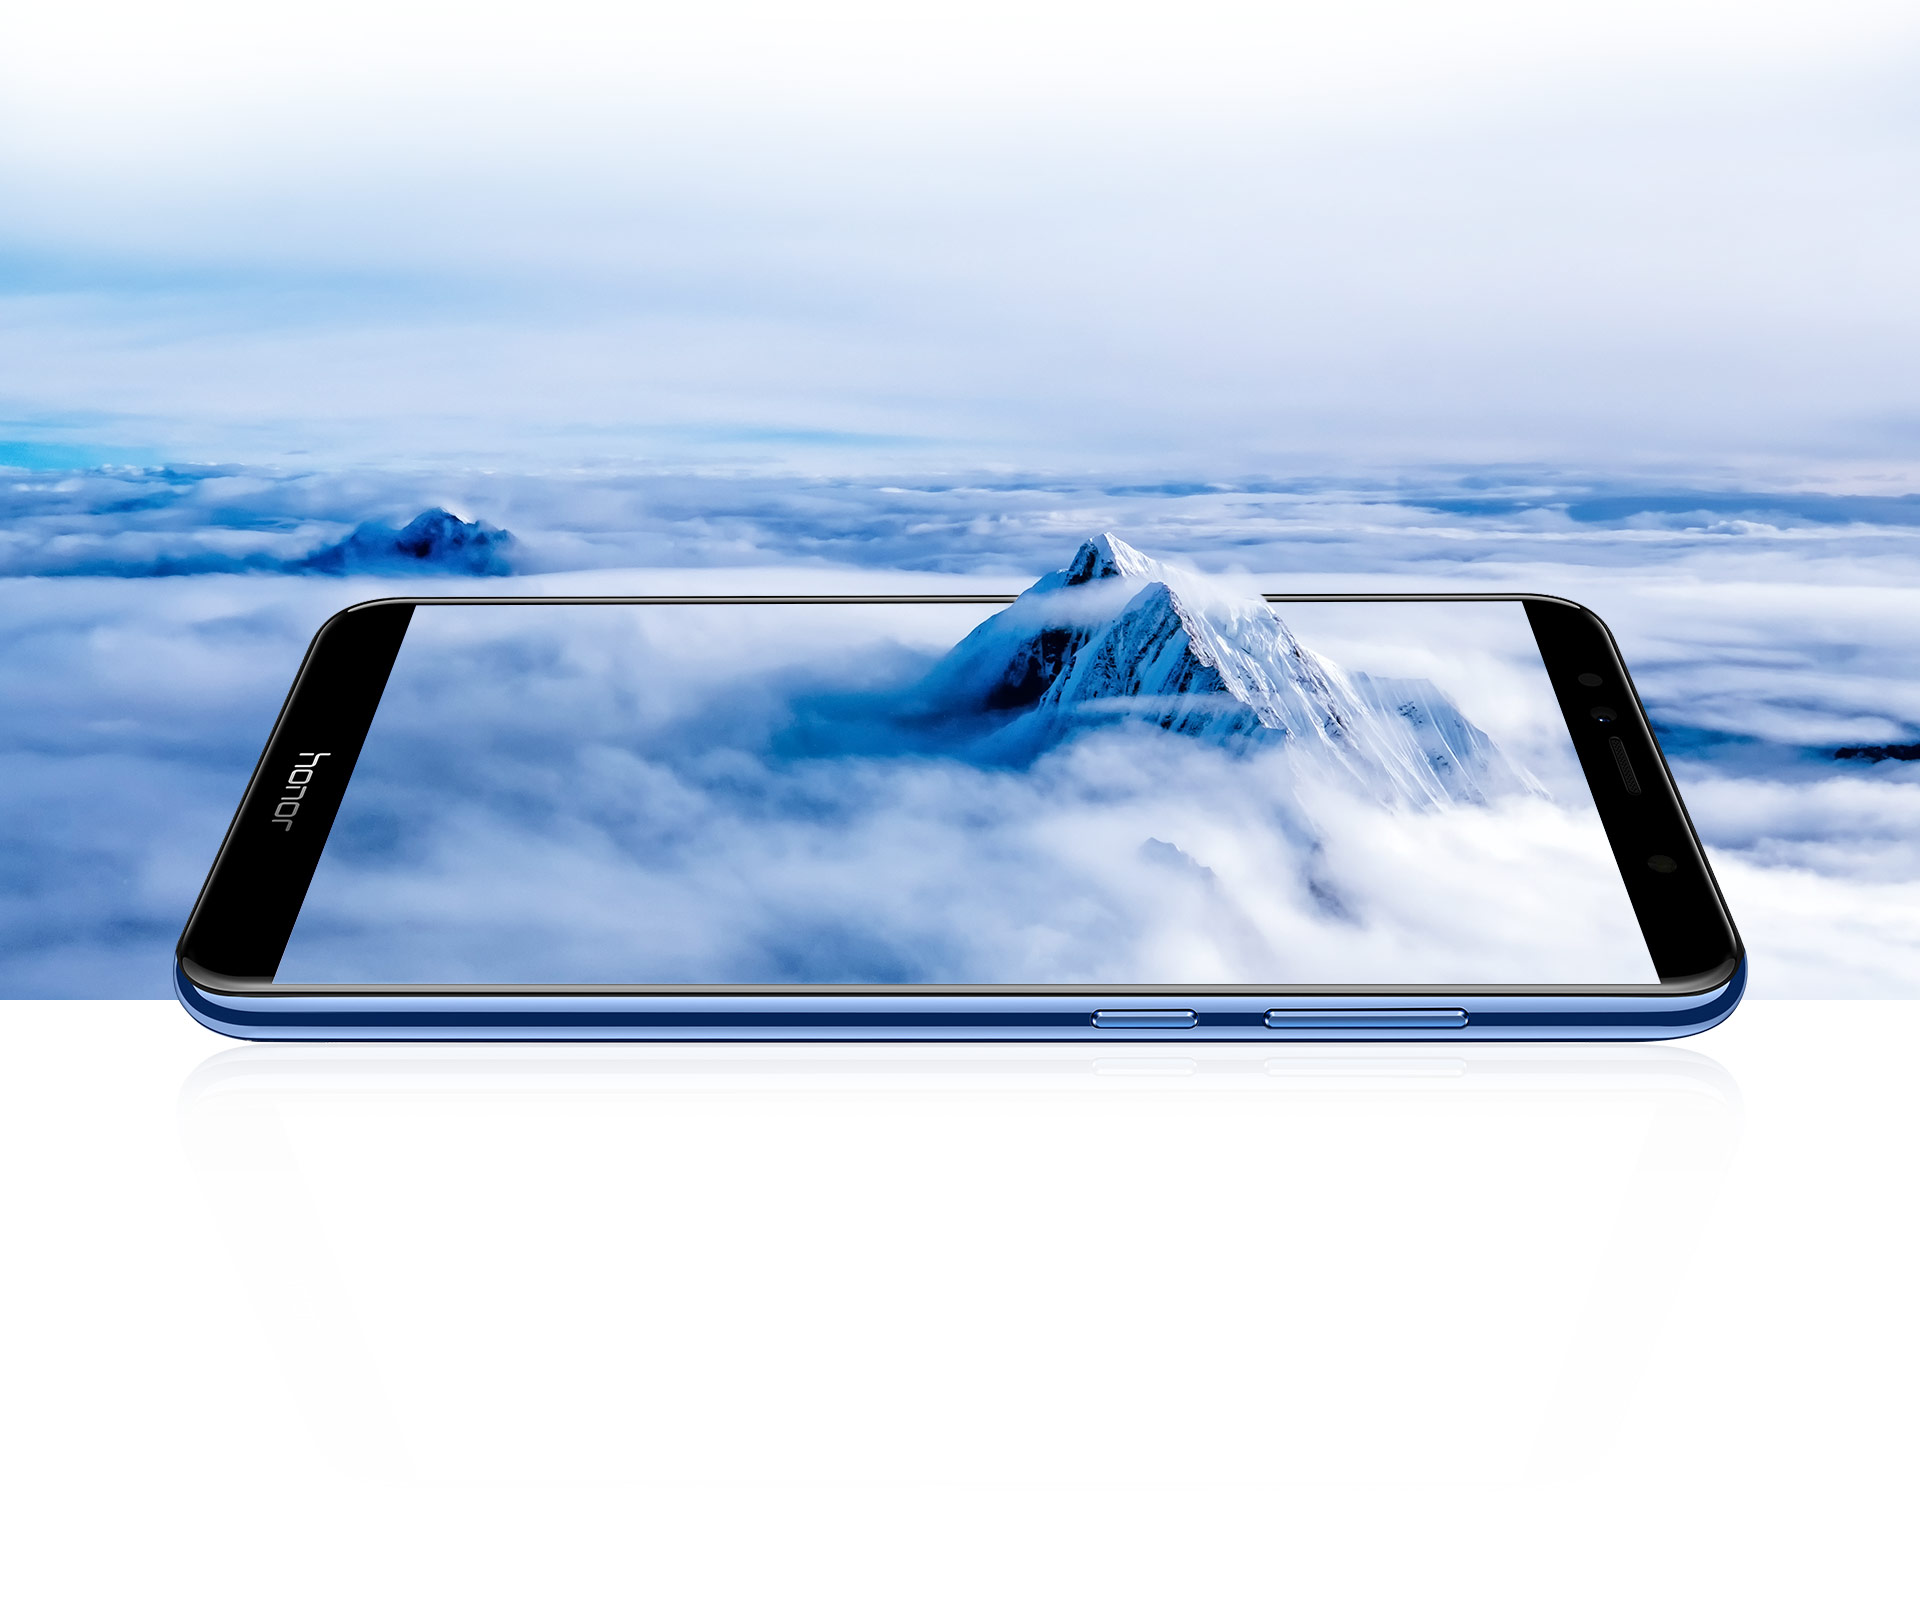 Honor 7A & Honor 7C launched in India - Here's all you need to know 8